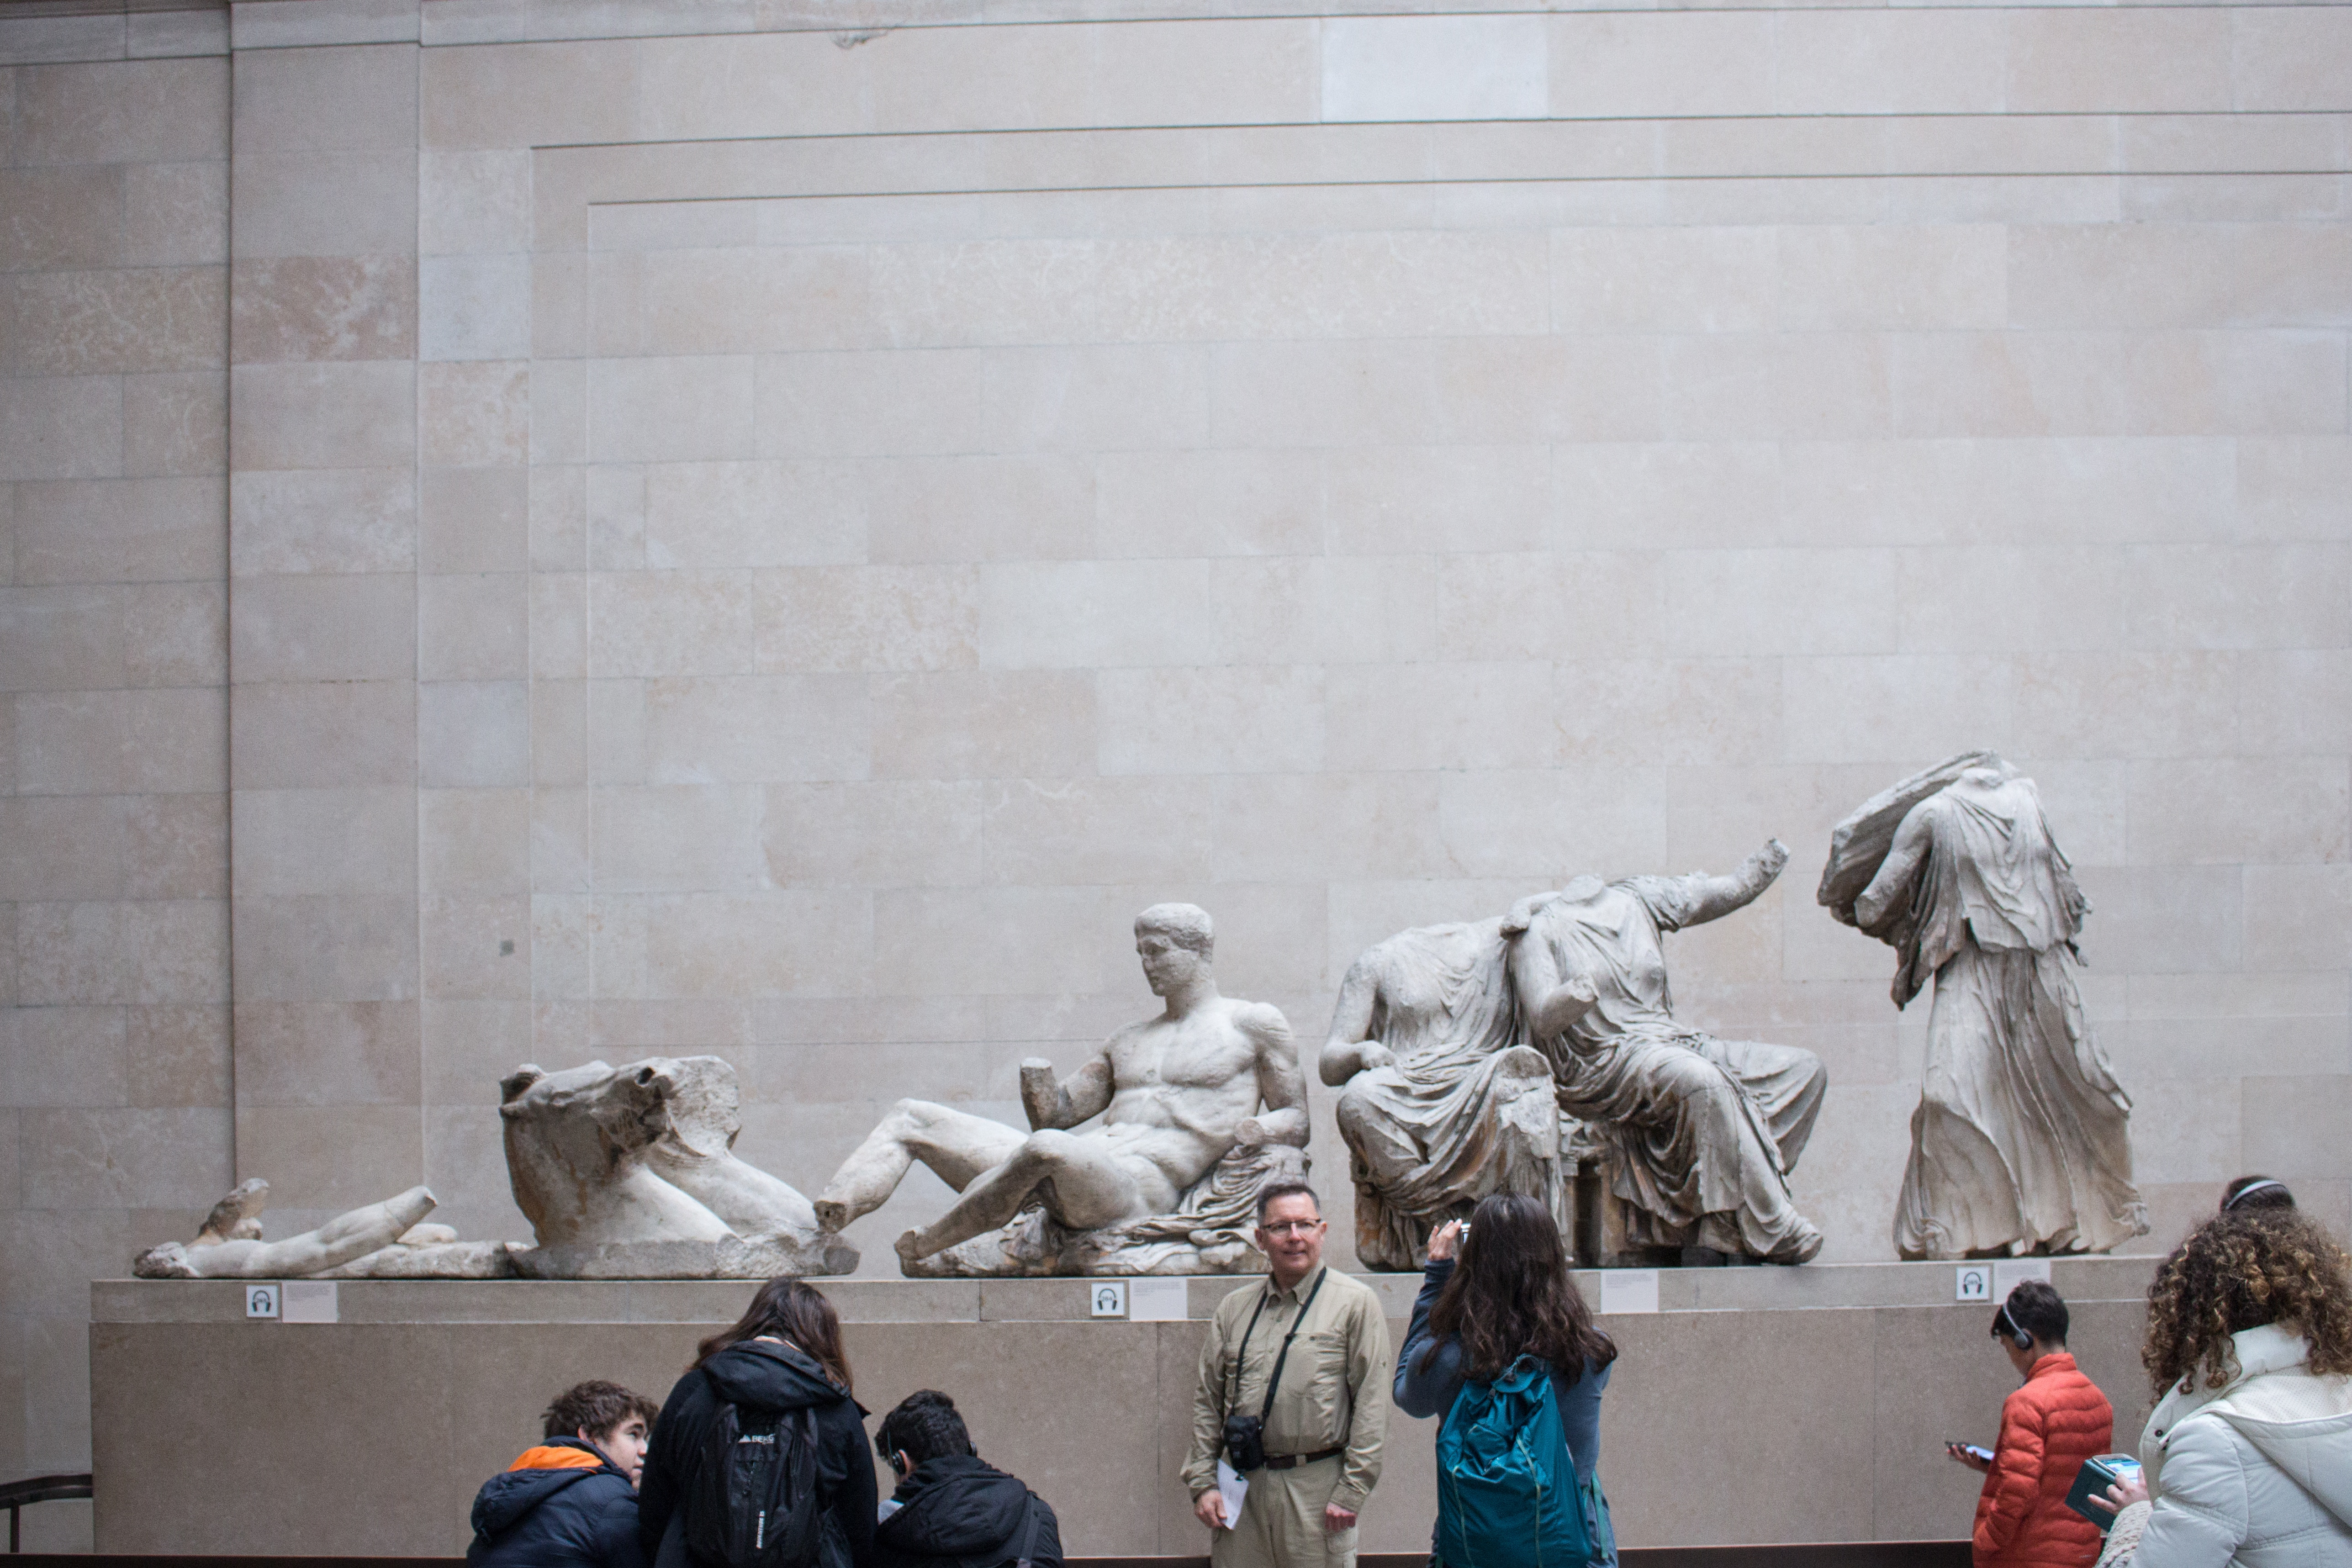 People looking at statues in the British Museum. By Nicole Baster.